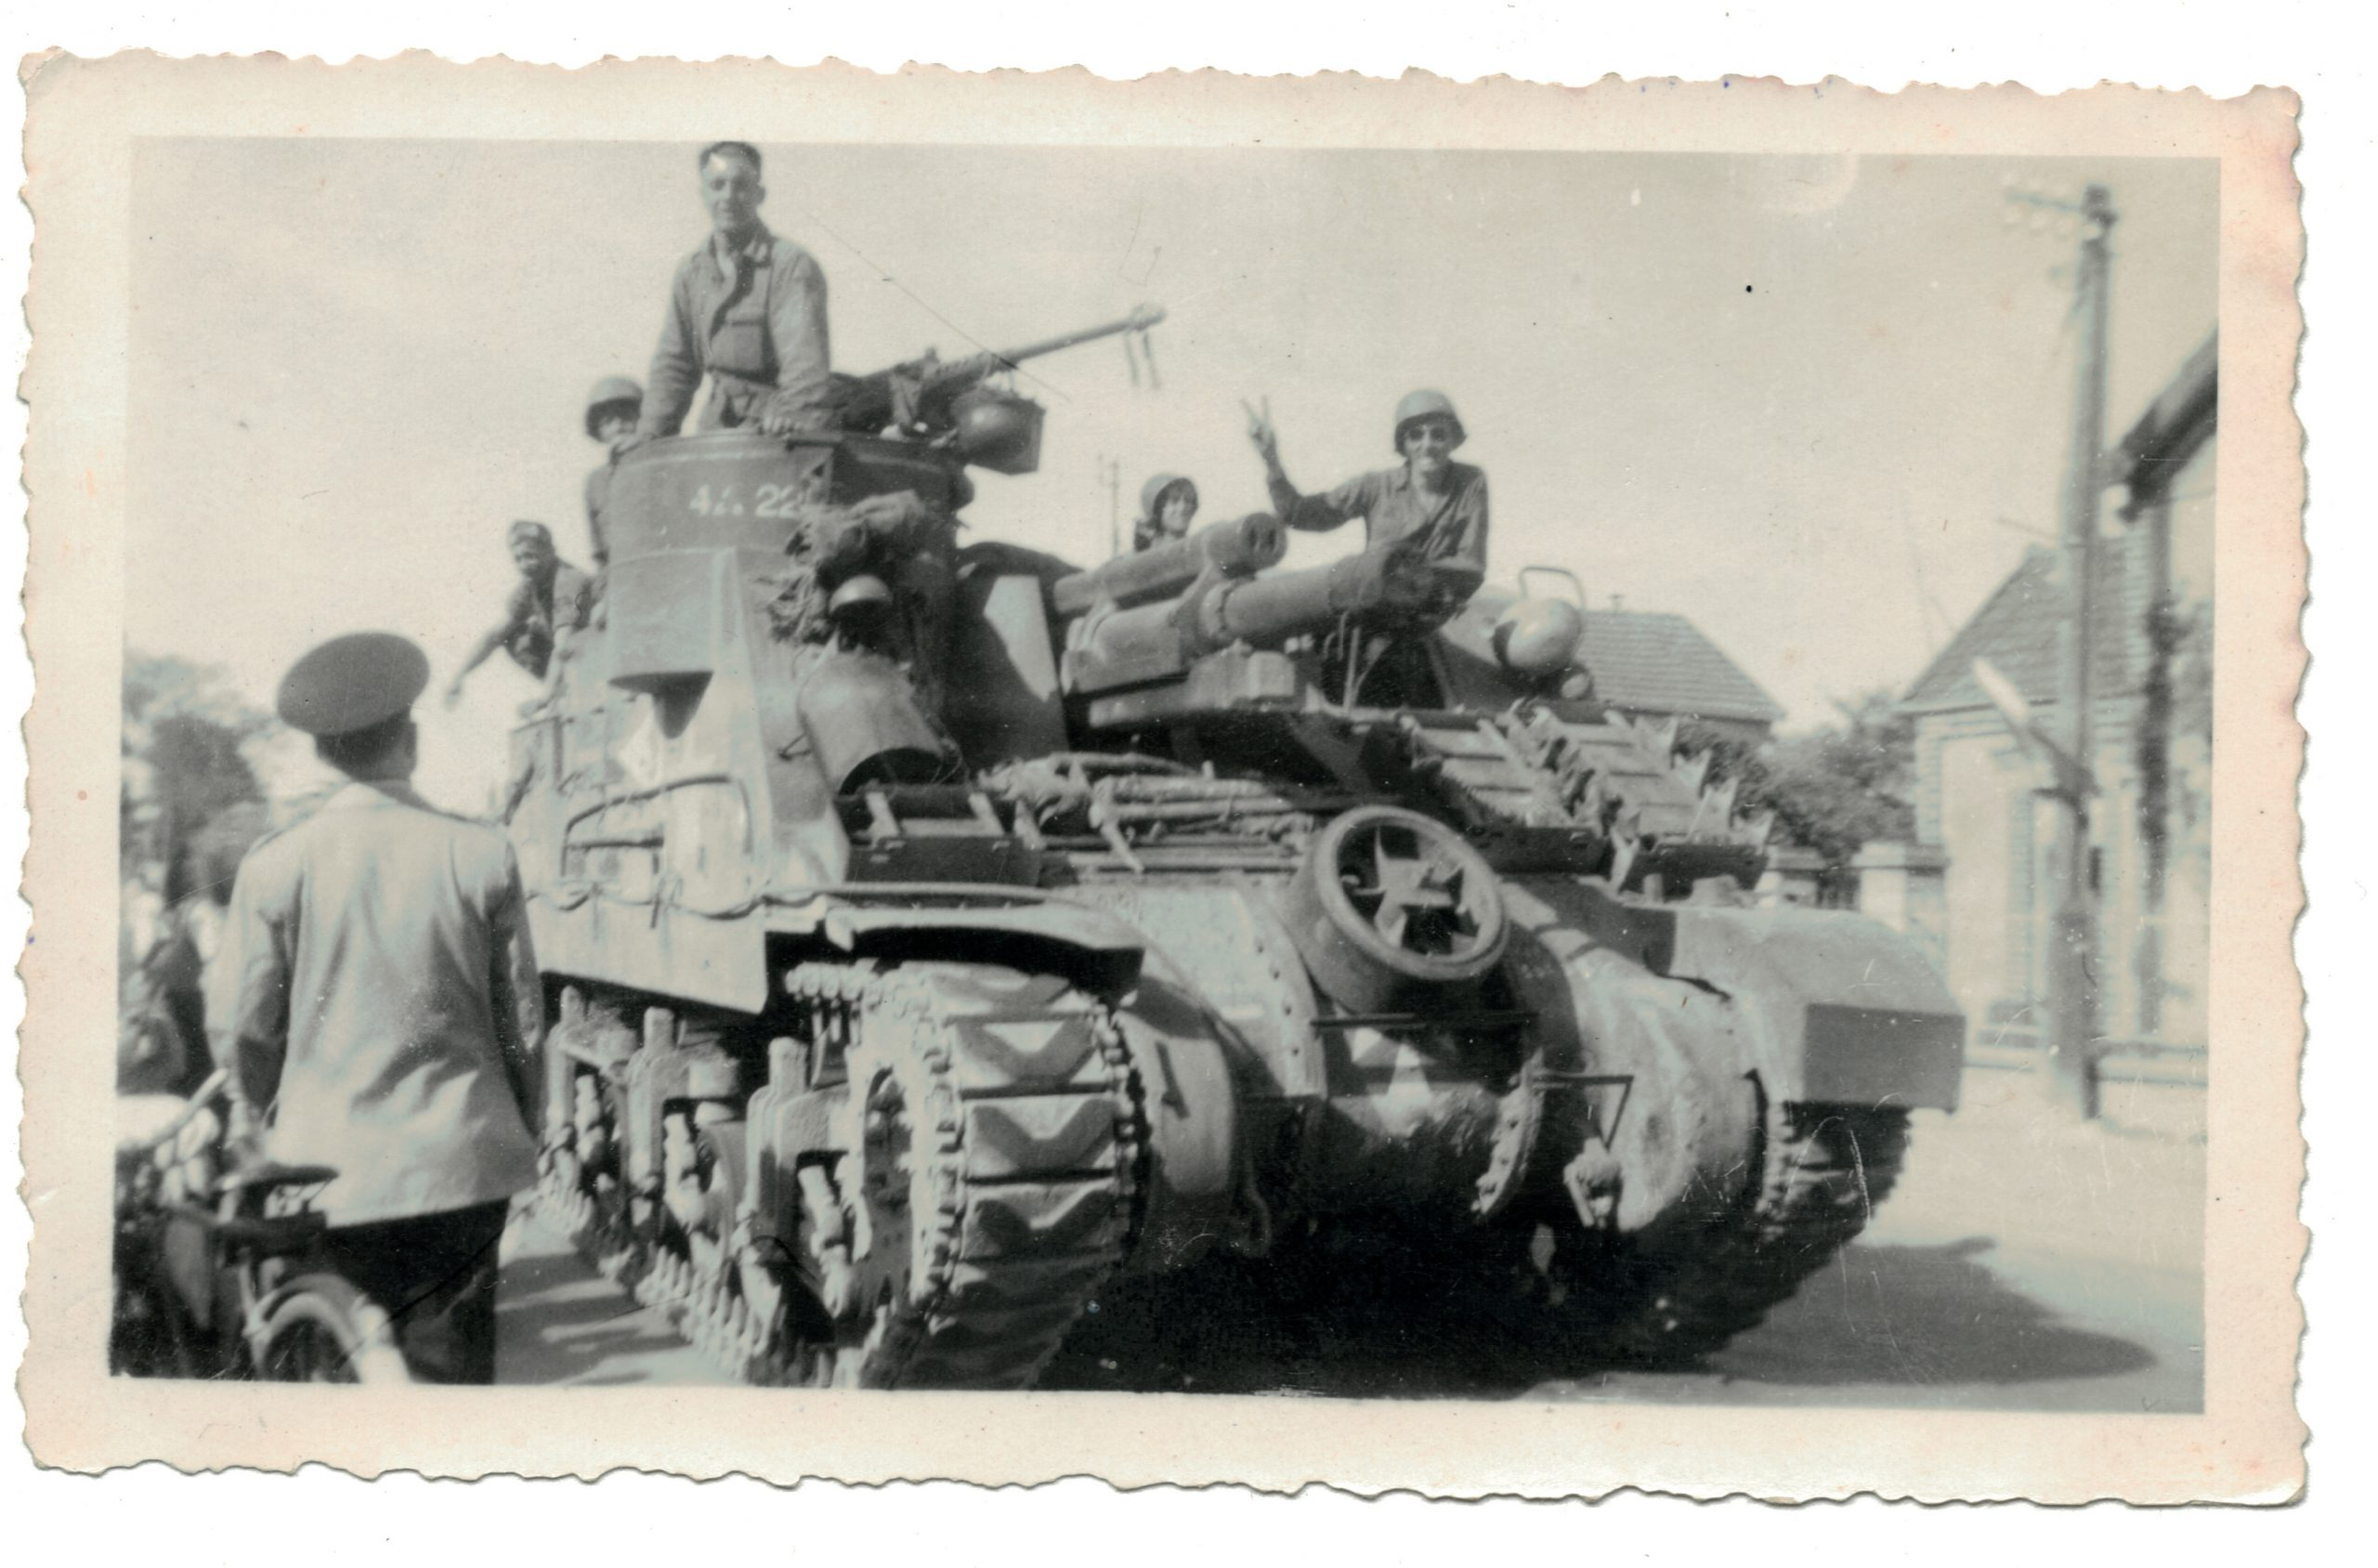 3 Photos Snapshot - 1944 - Libération - France - GI - Village français - Char - Sherman